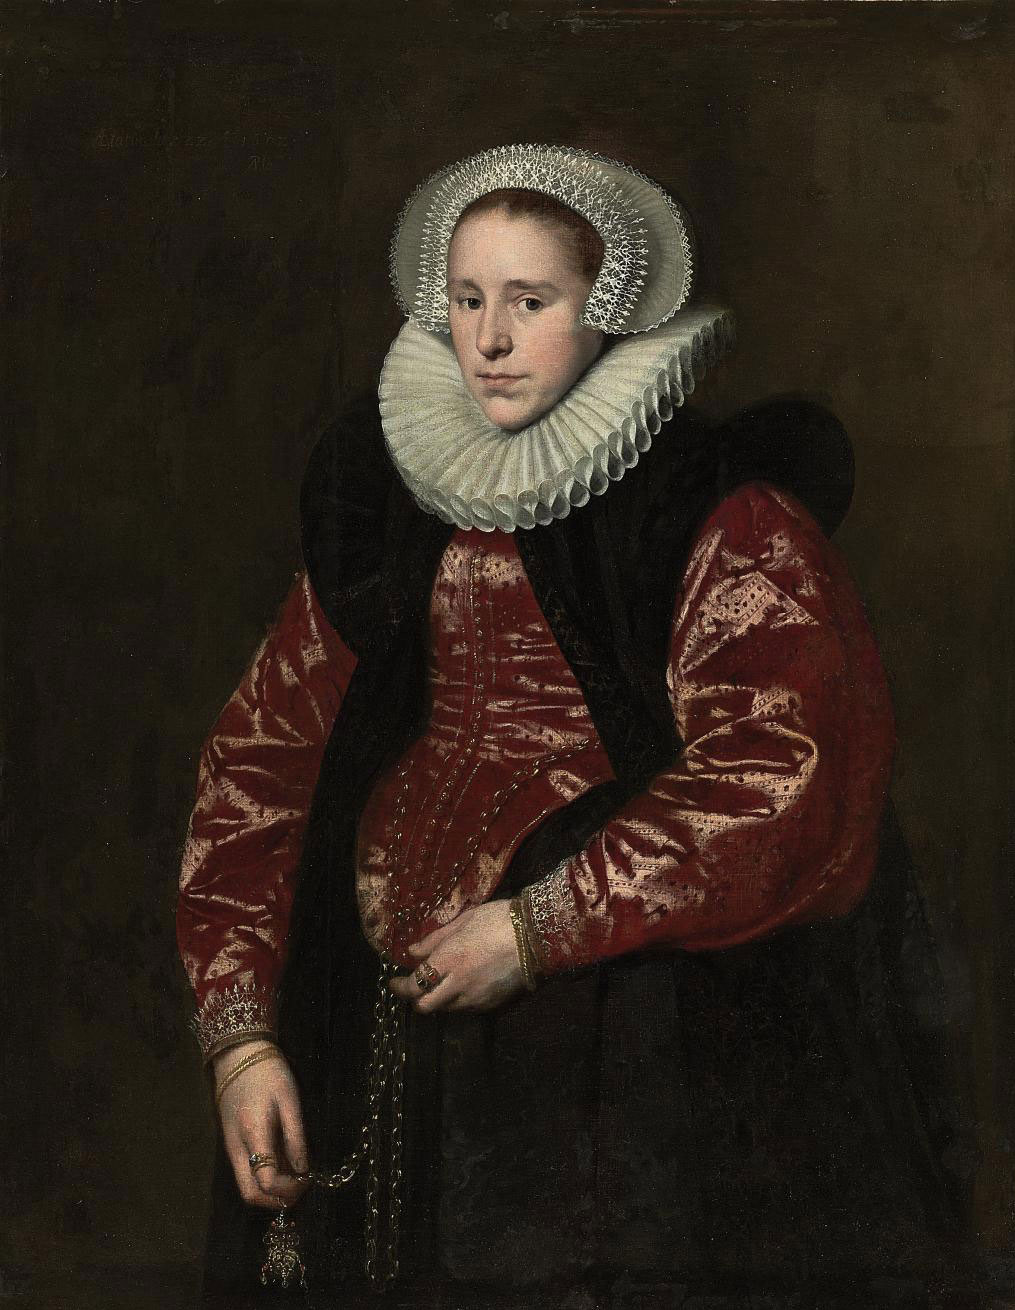 Portrait of a lady, half-length, in a lace bonnet, ruff, red gown with a black velvet mantle, holding a jewelled gold pomander